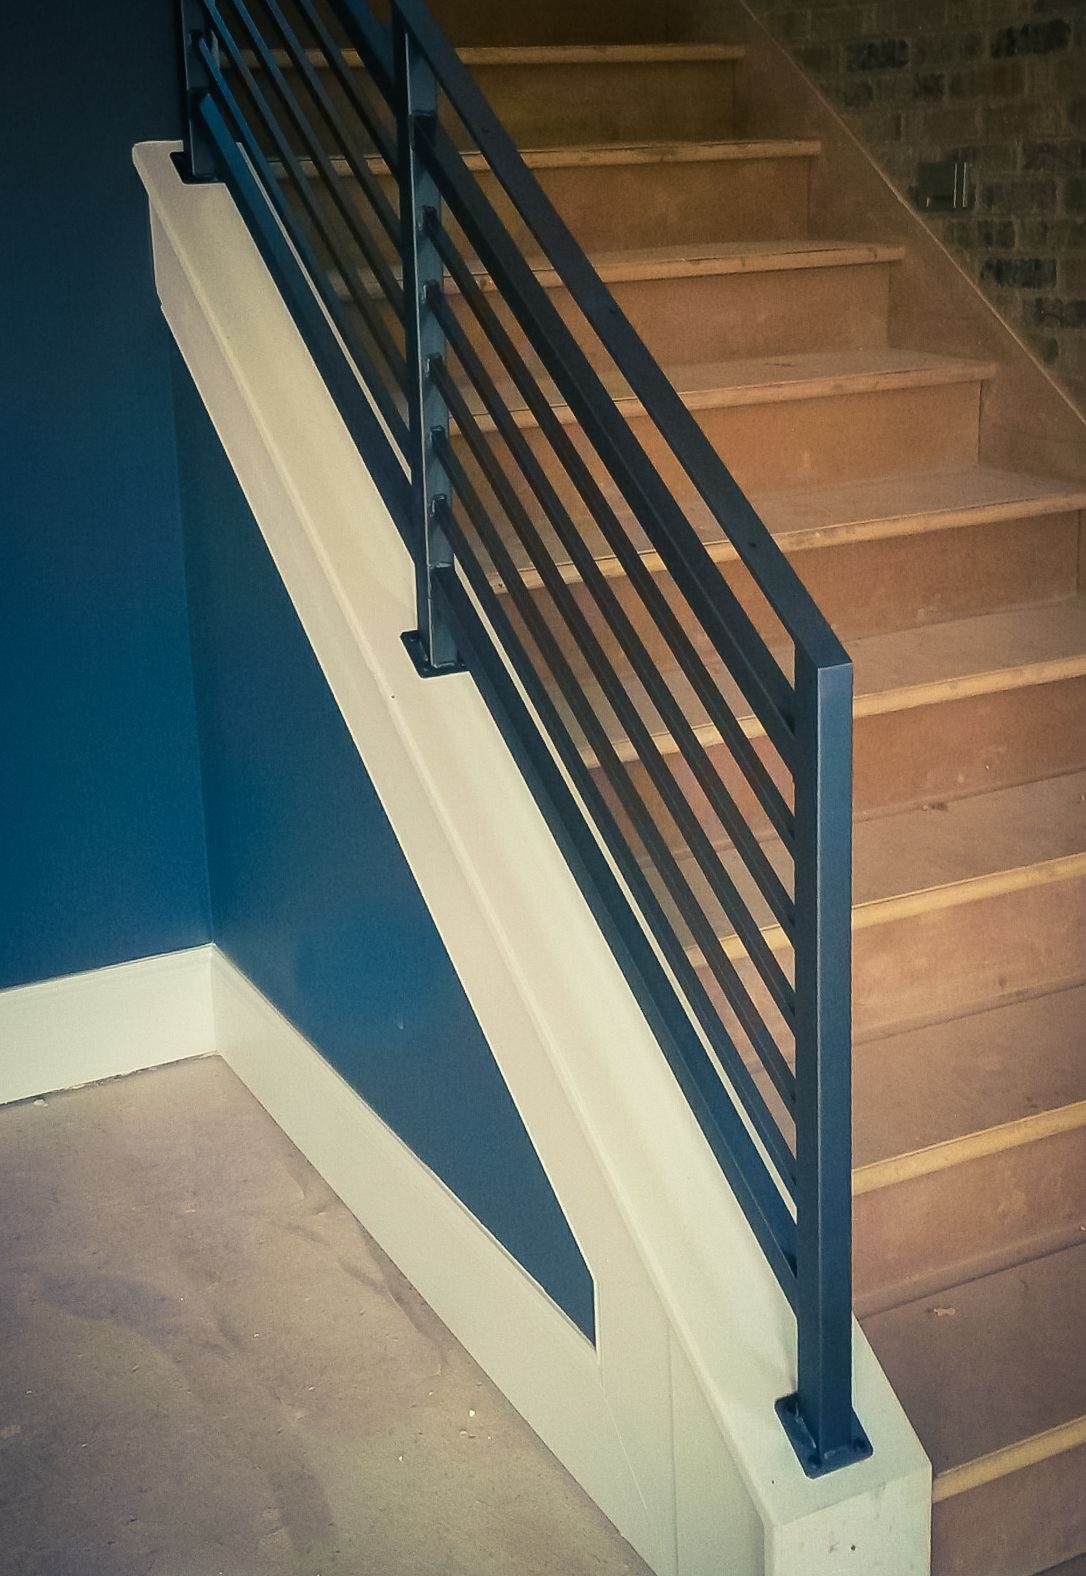 Wrought Iron Railing With Clean Horizontal Lines Wrought Iron